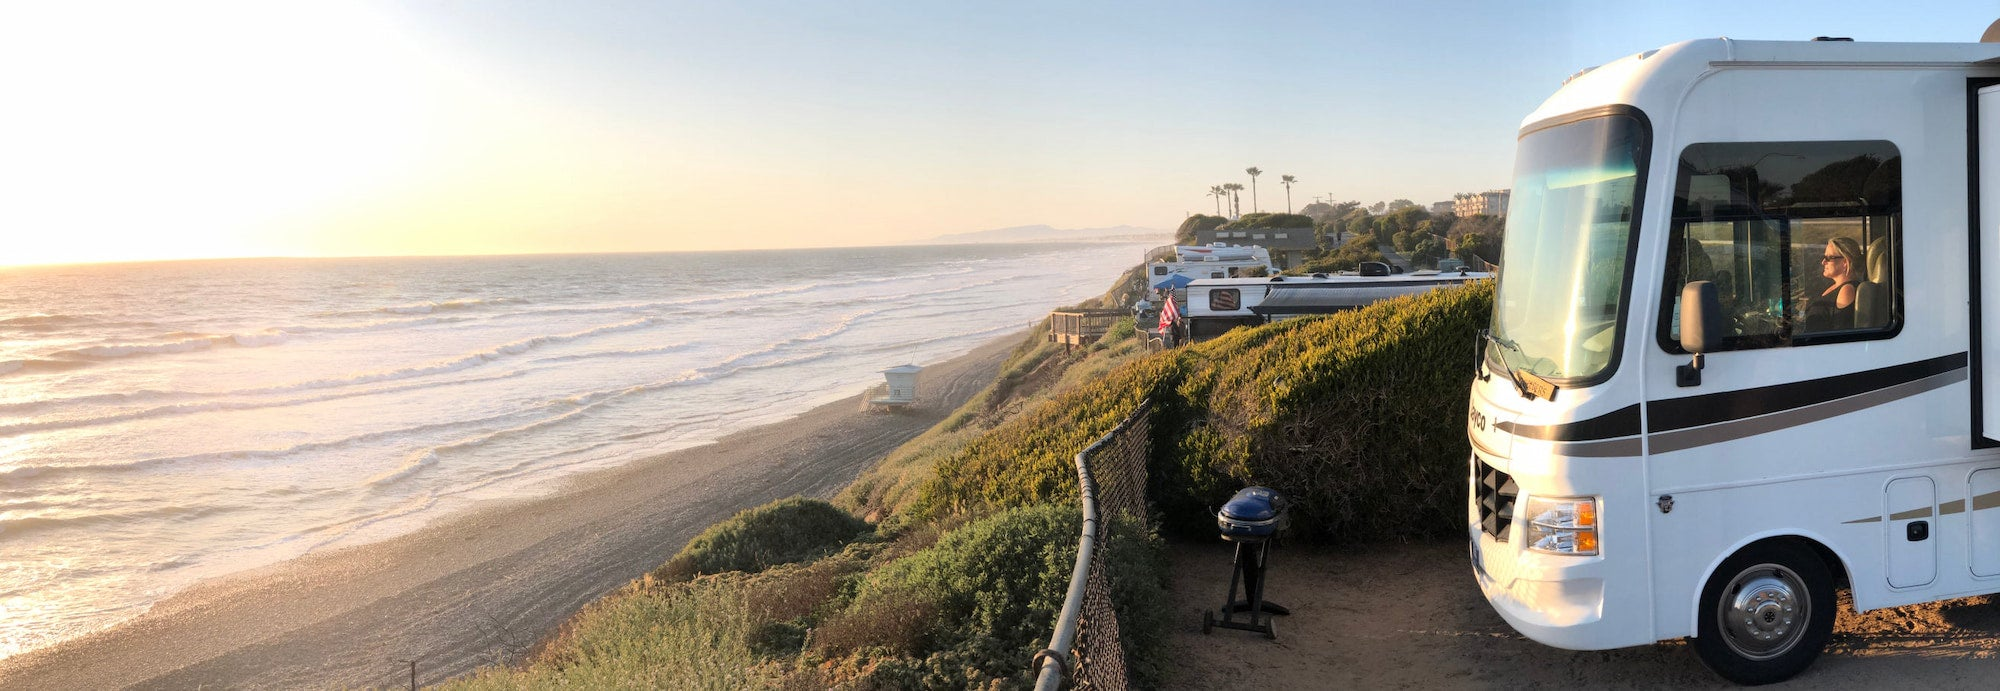 RV parked on edge of cliff overlooking the beach.